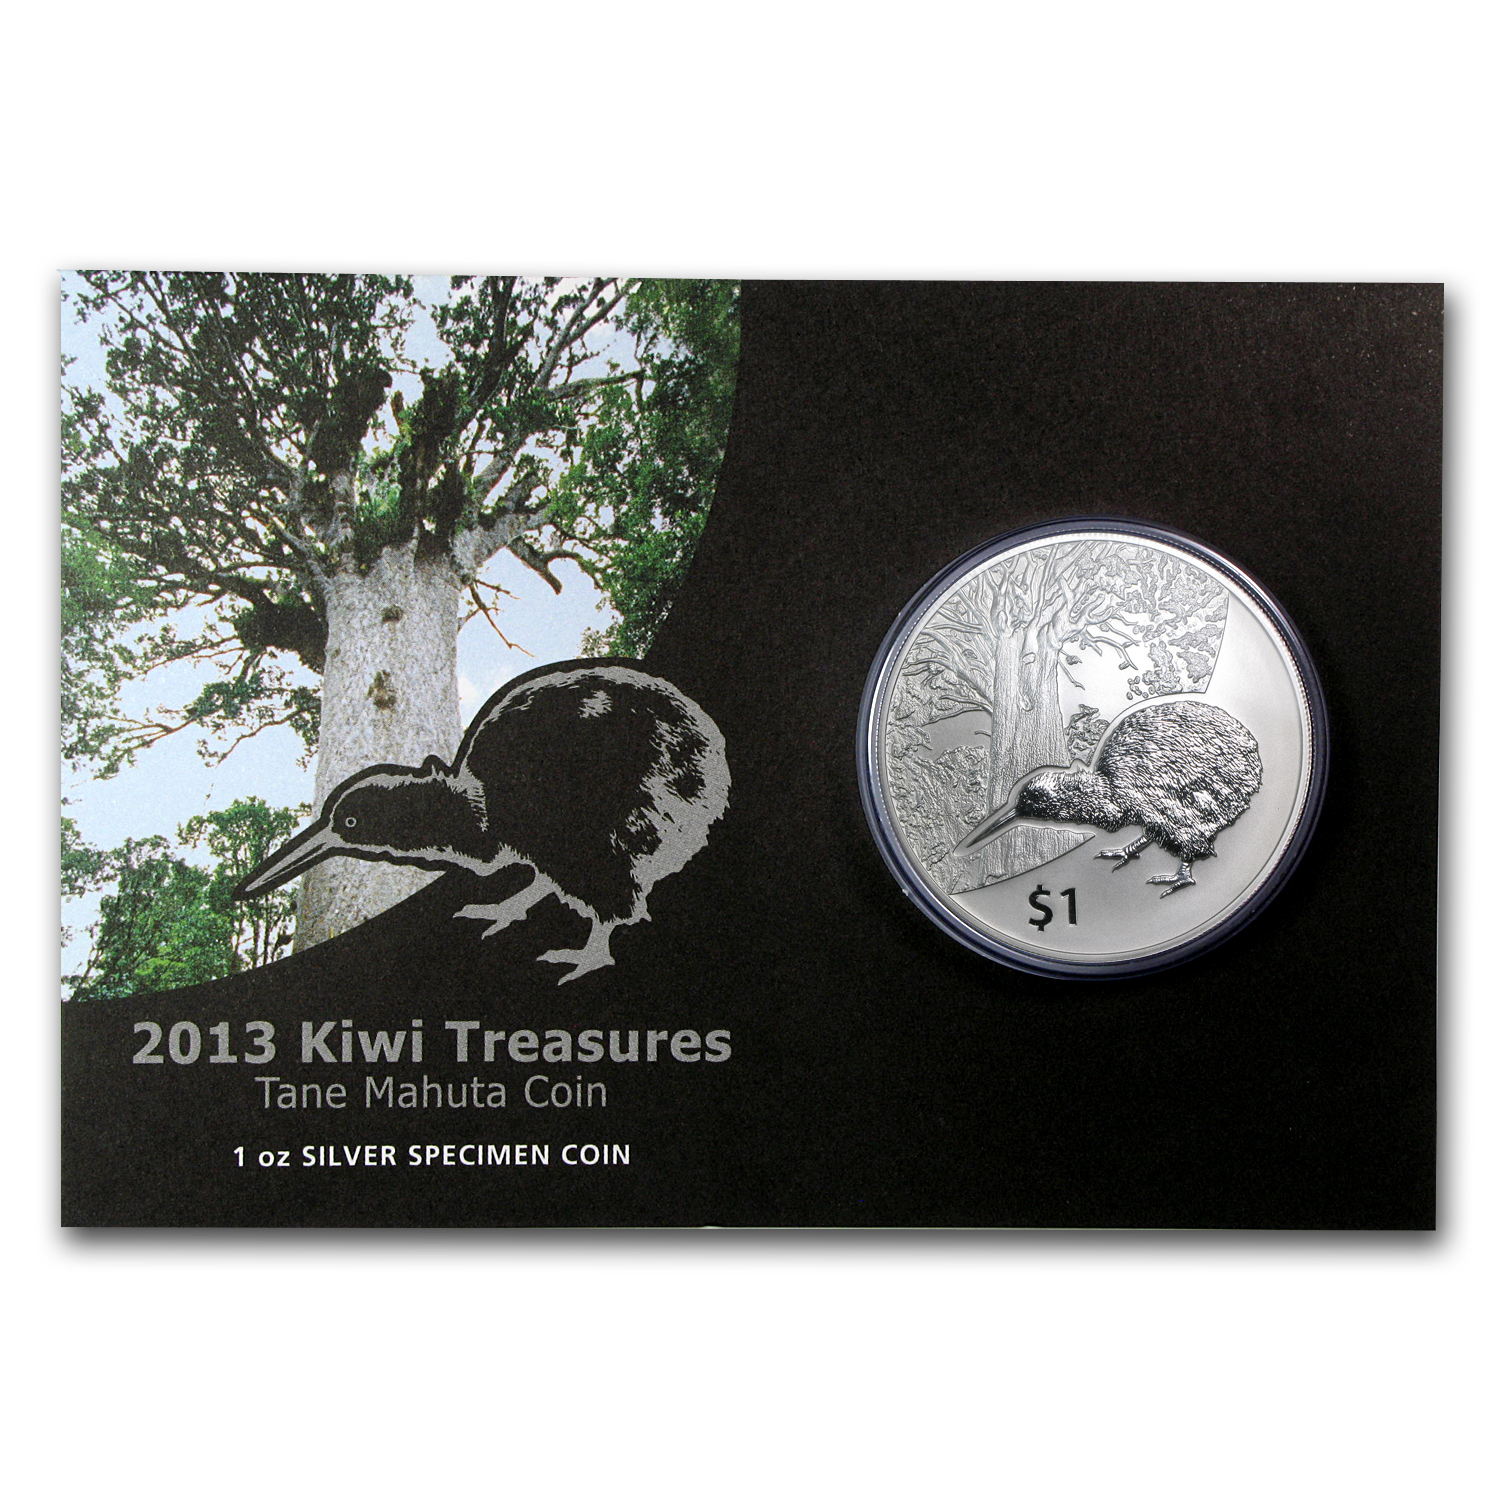 2013 New Zealand 1 oz Silver Treasures $1 Kiwi Specimen